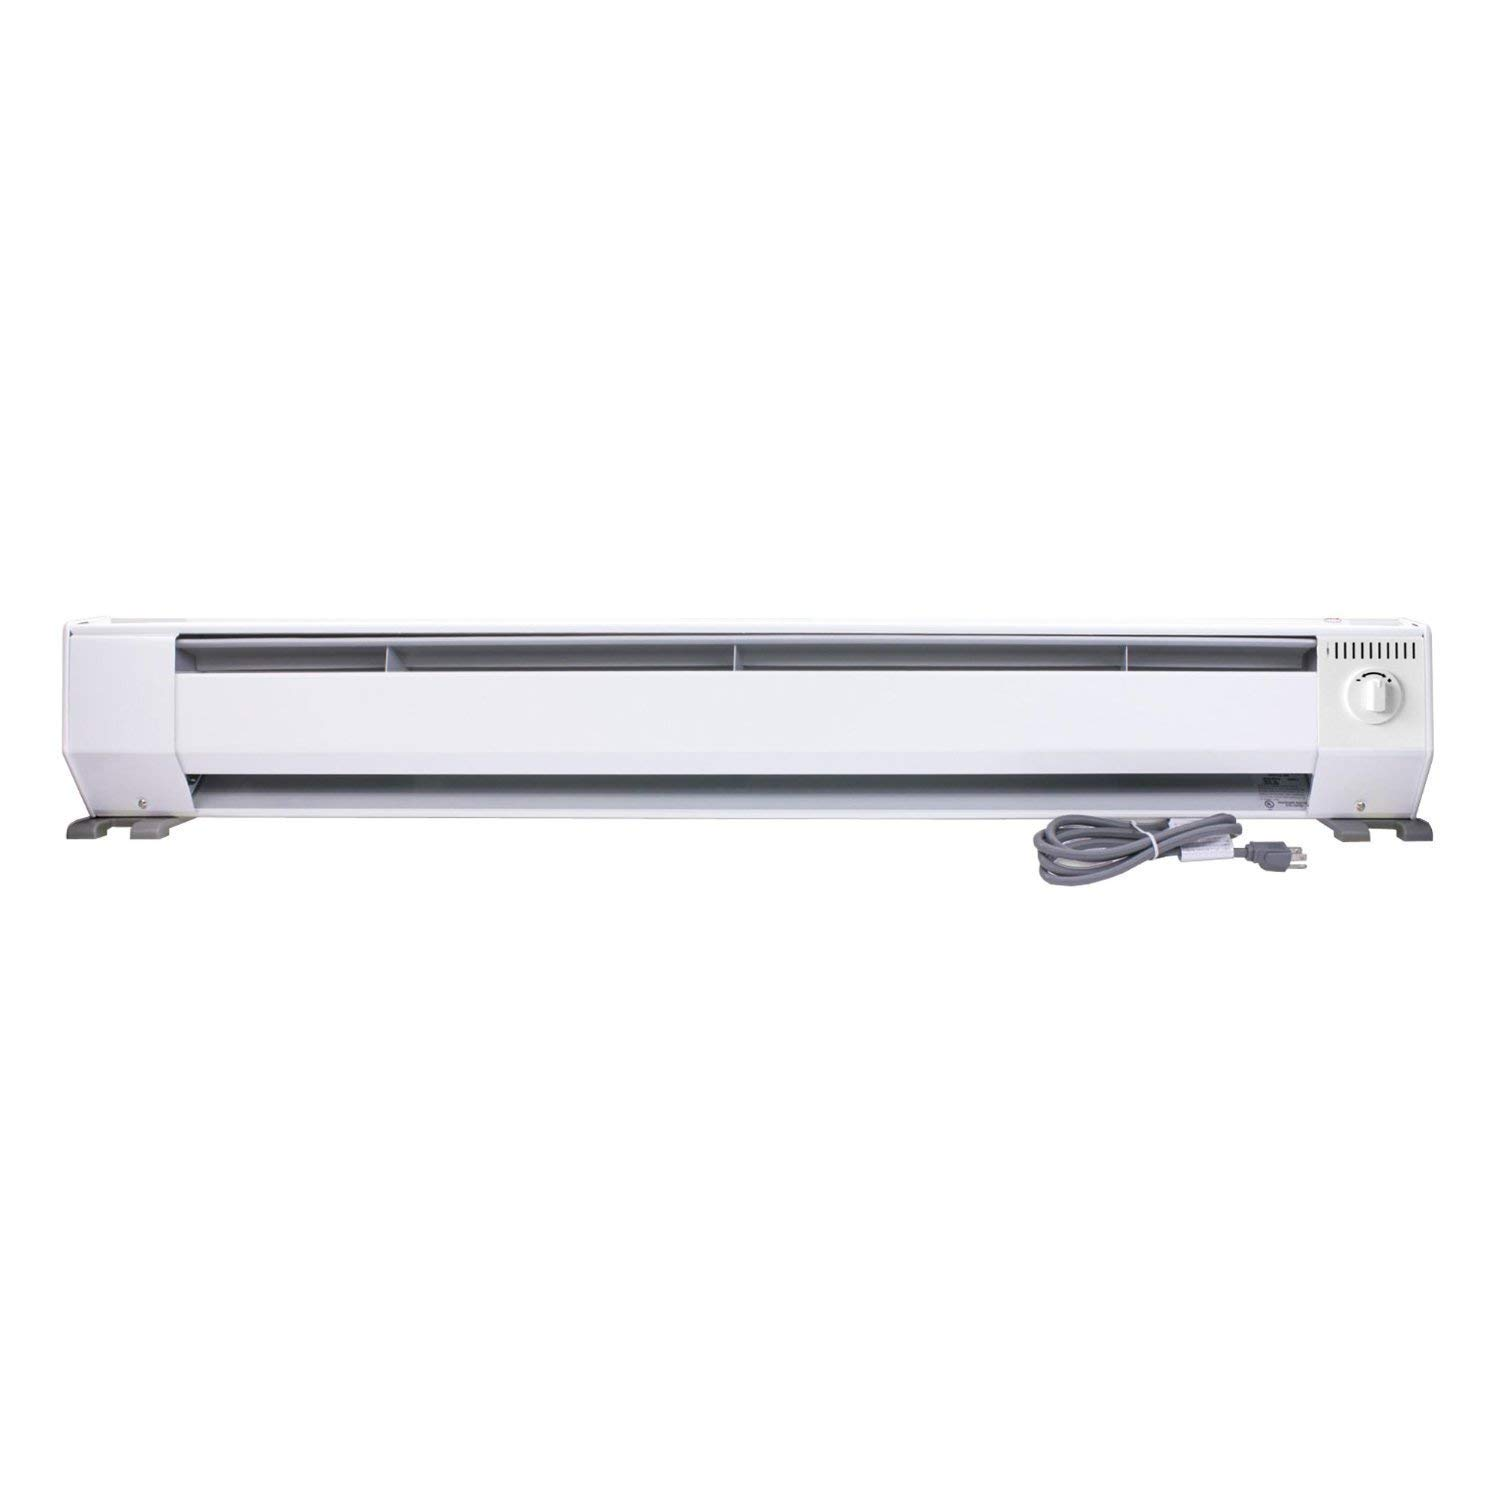 King Electric KPH1210 1000 Watt 120V 3-Foot Portable Baseboard Heater